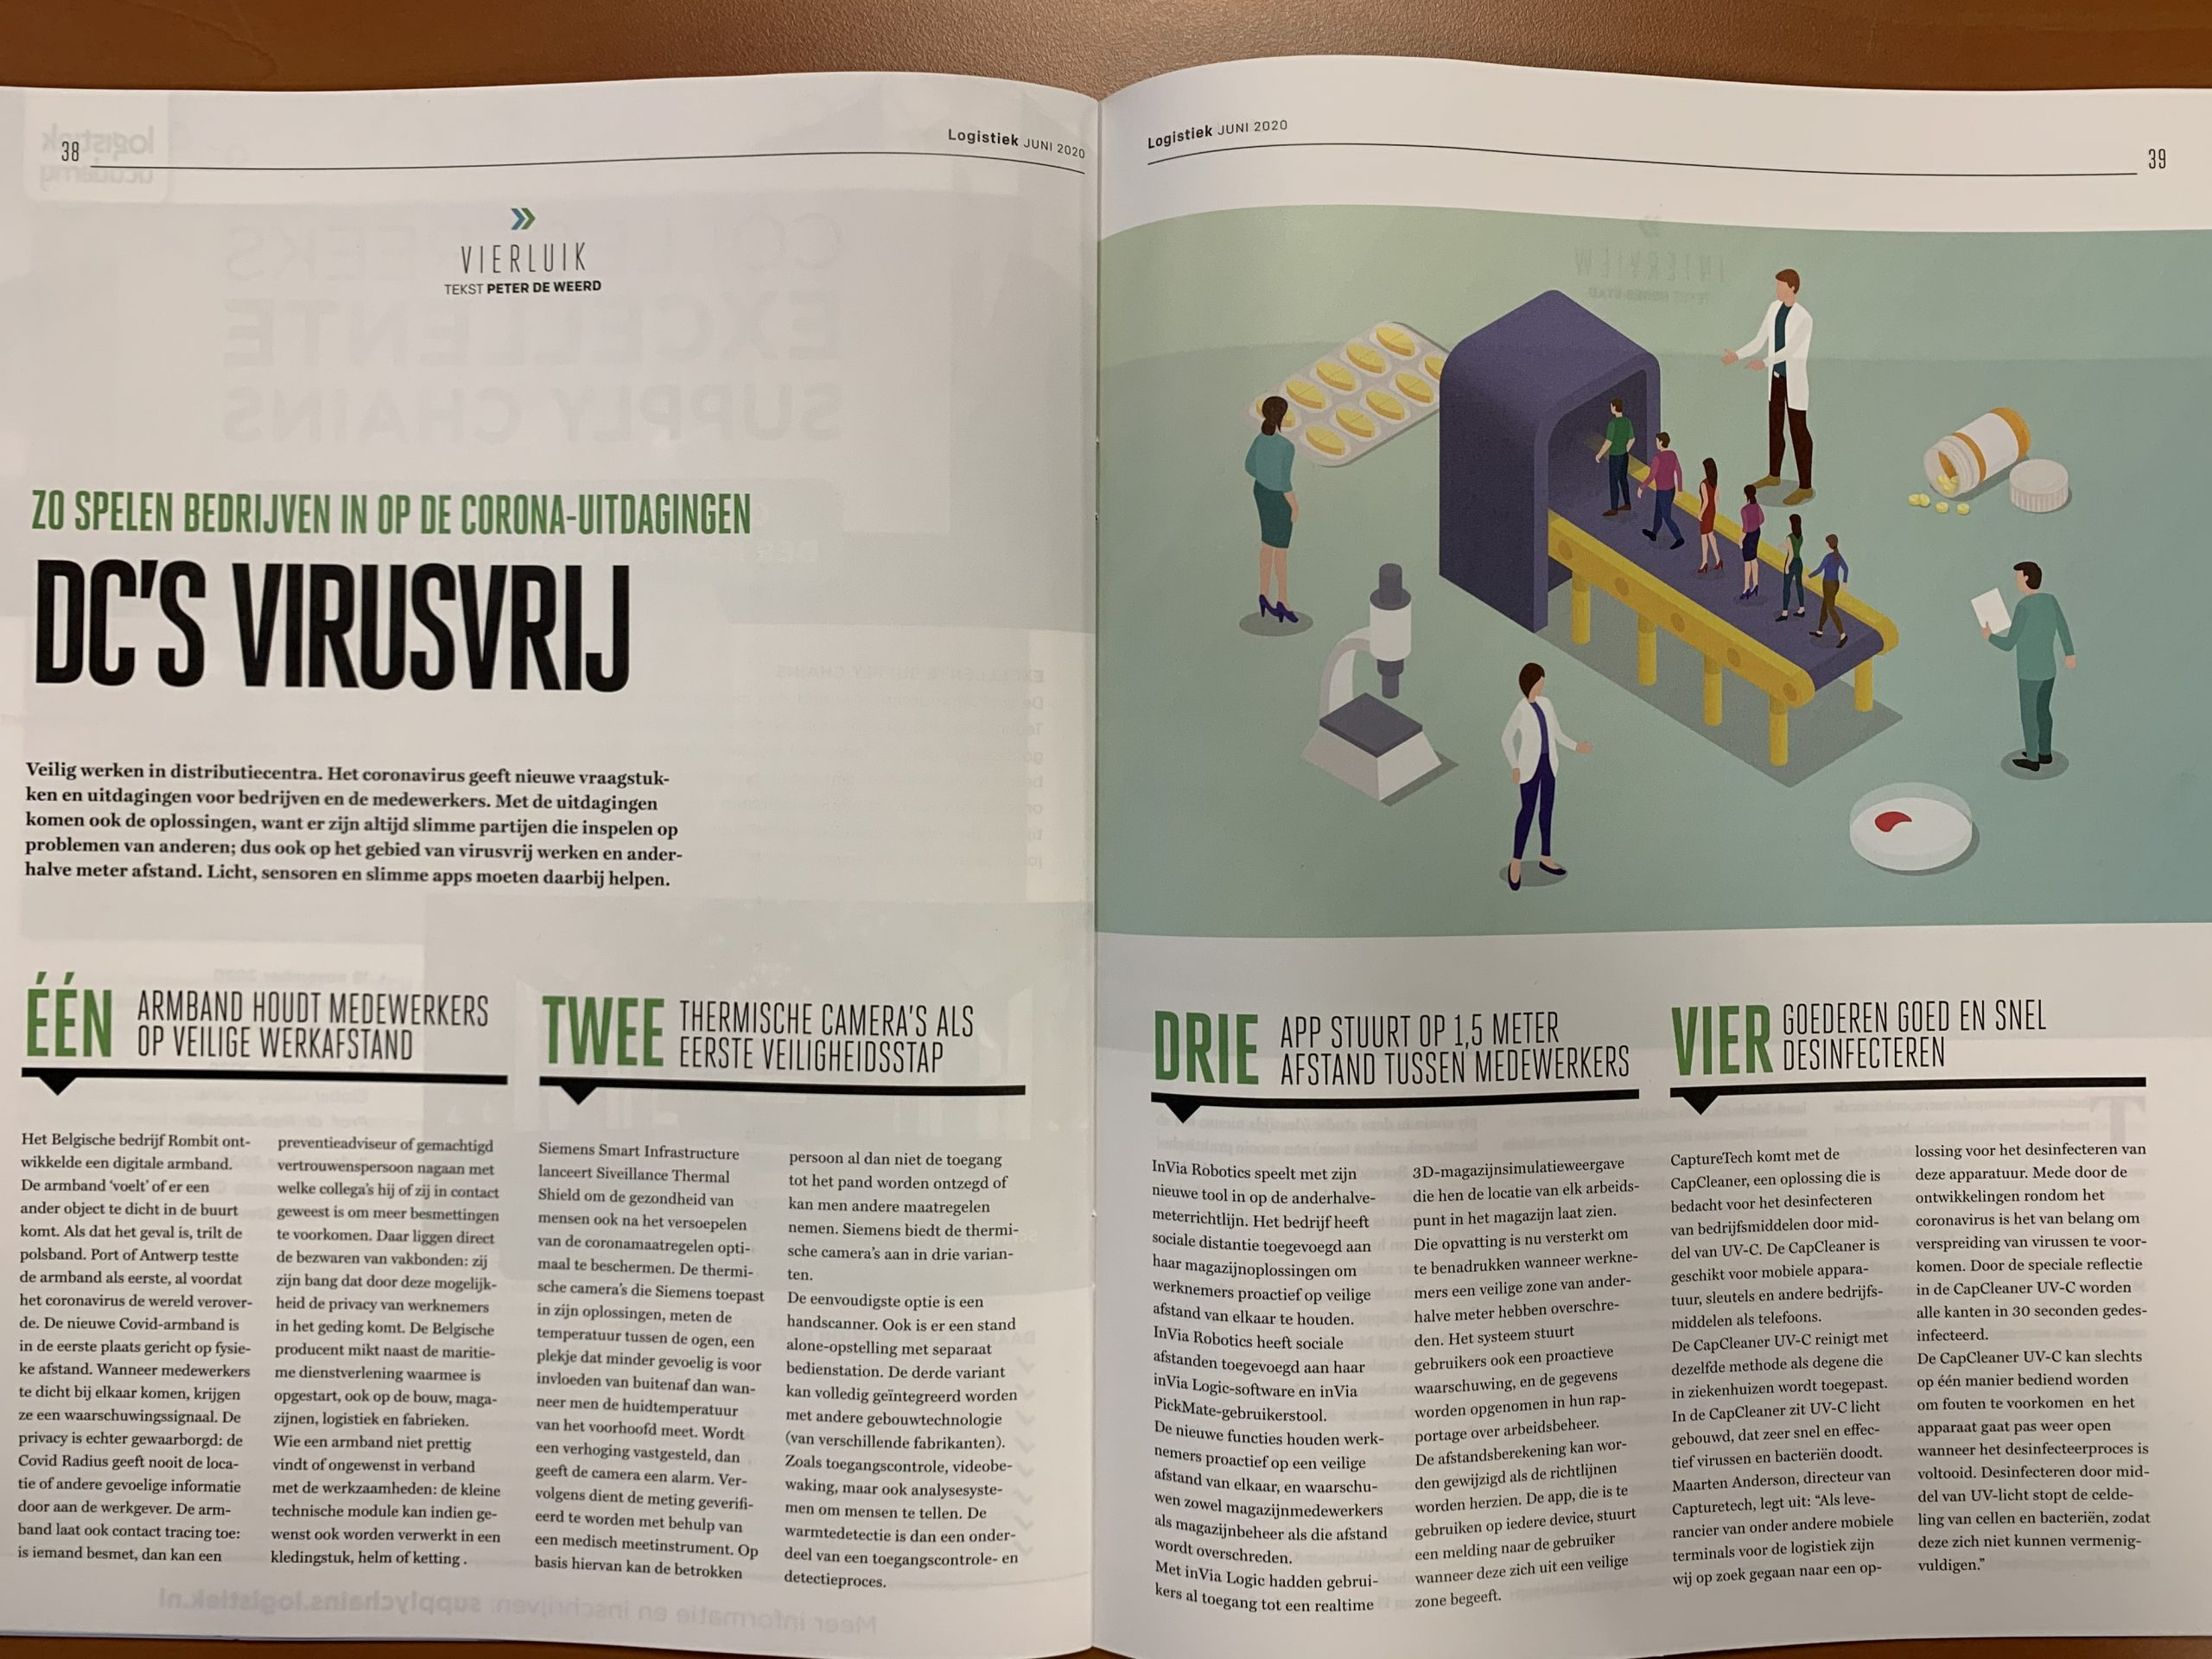 Photograph of an article about safe and hygienic working during this pandemic in Logistics magazine in June 2020